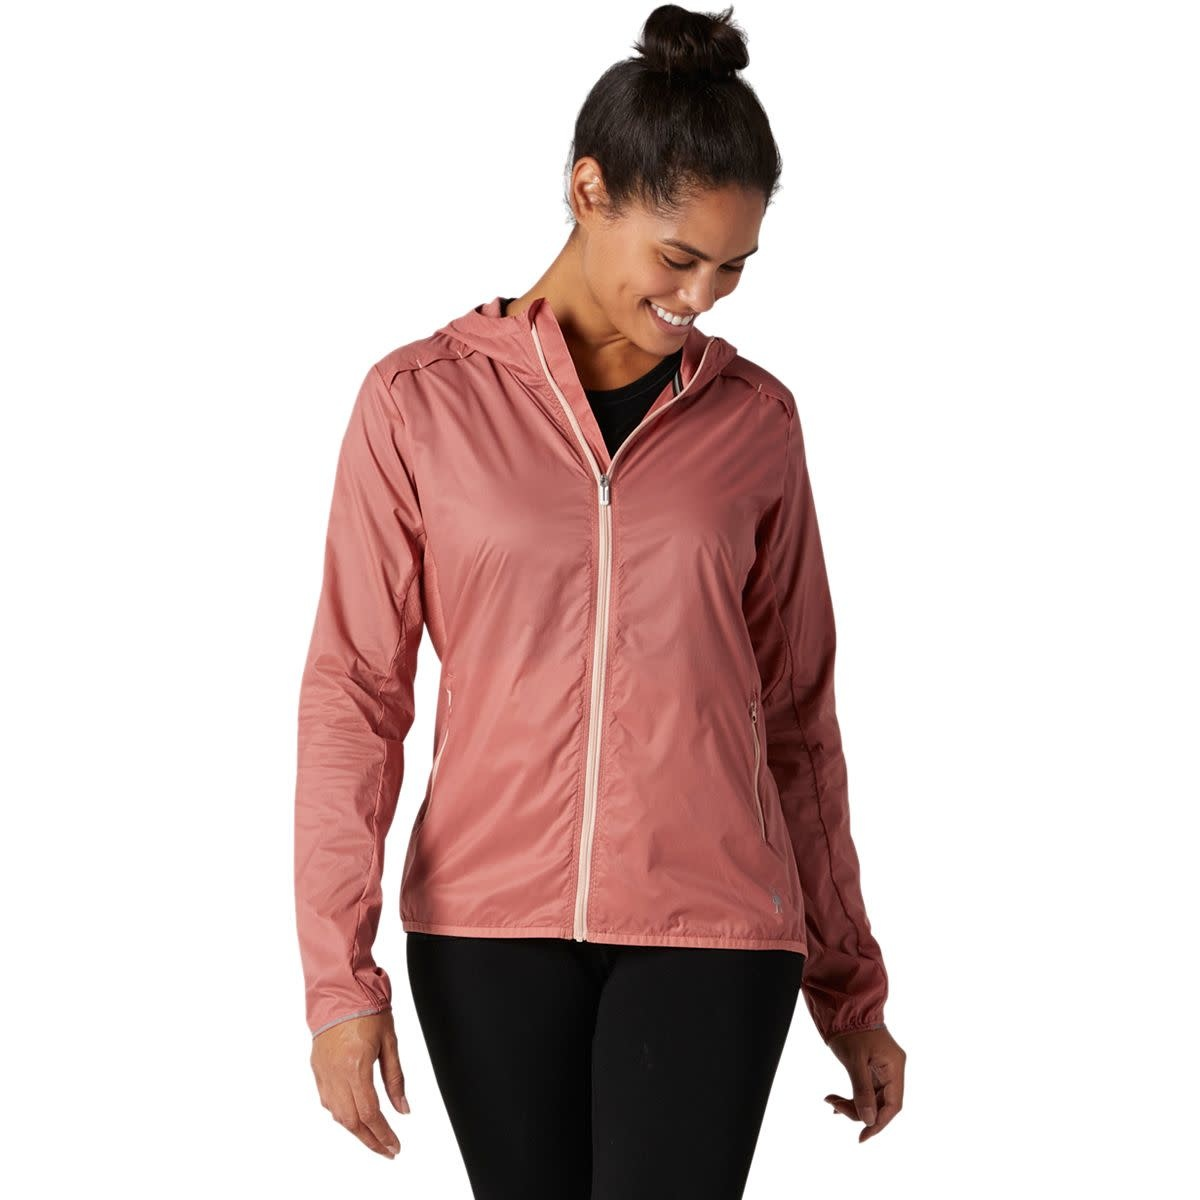 Smartwool Merino Sport UltraLight Hoodie - Canyon Rose